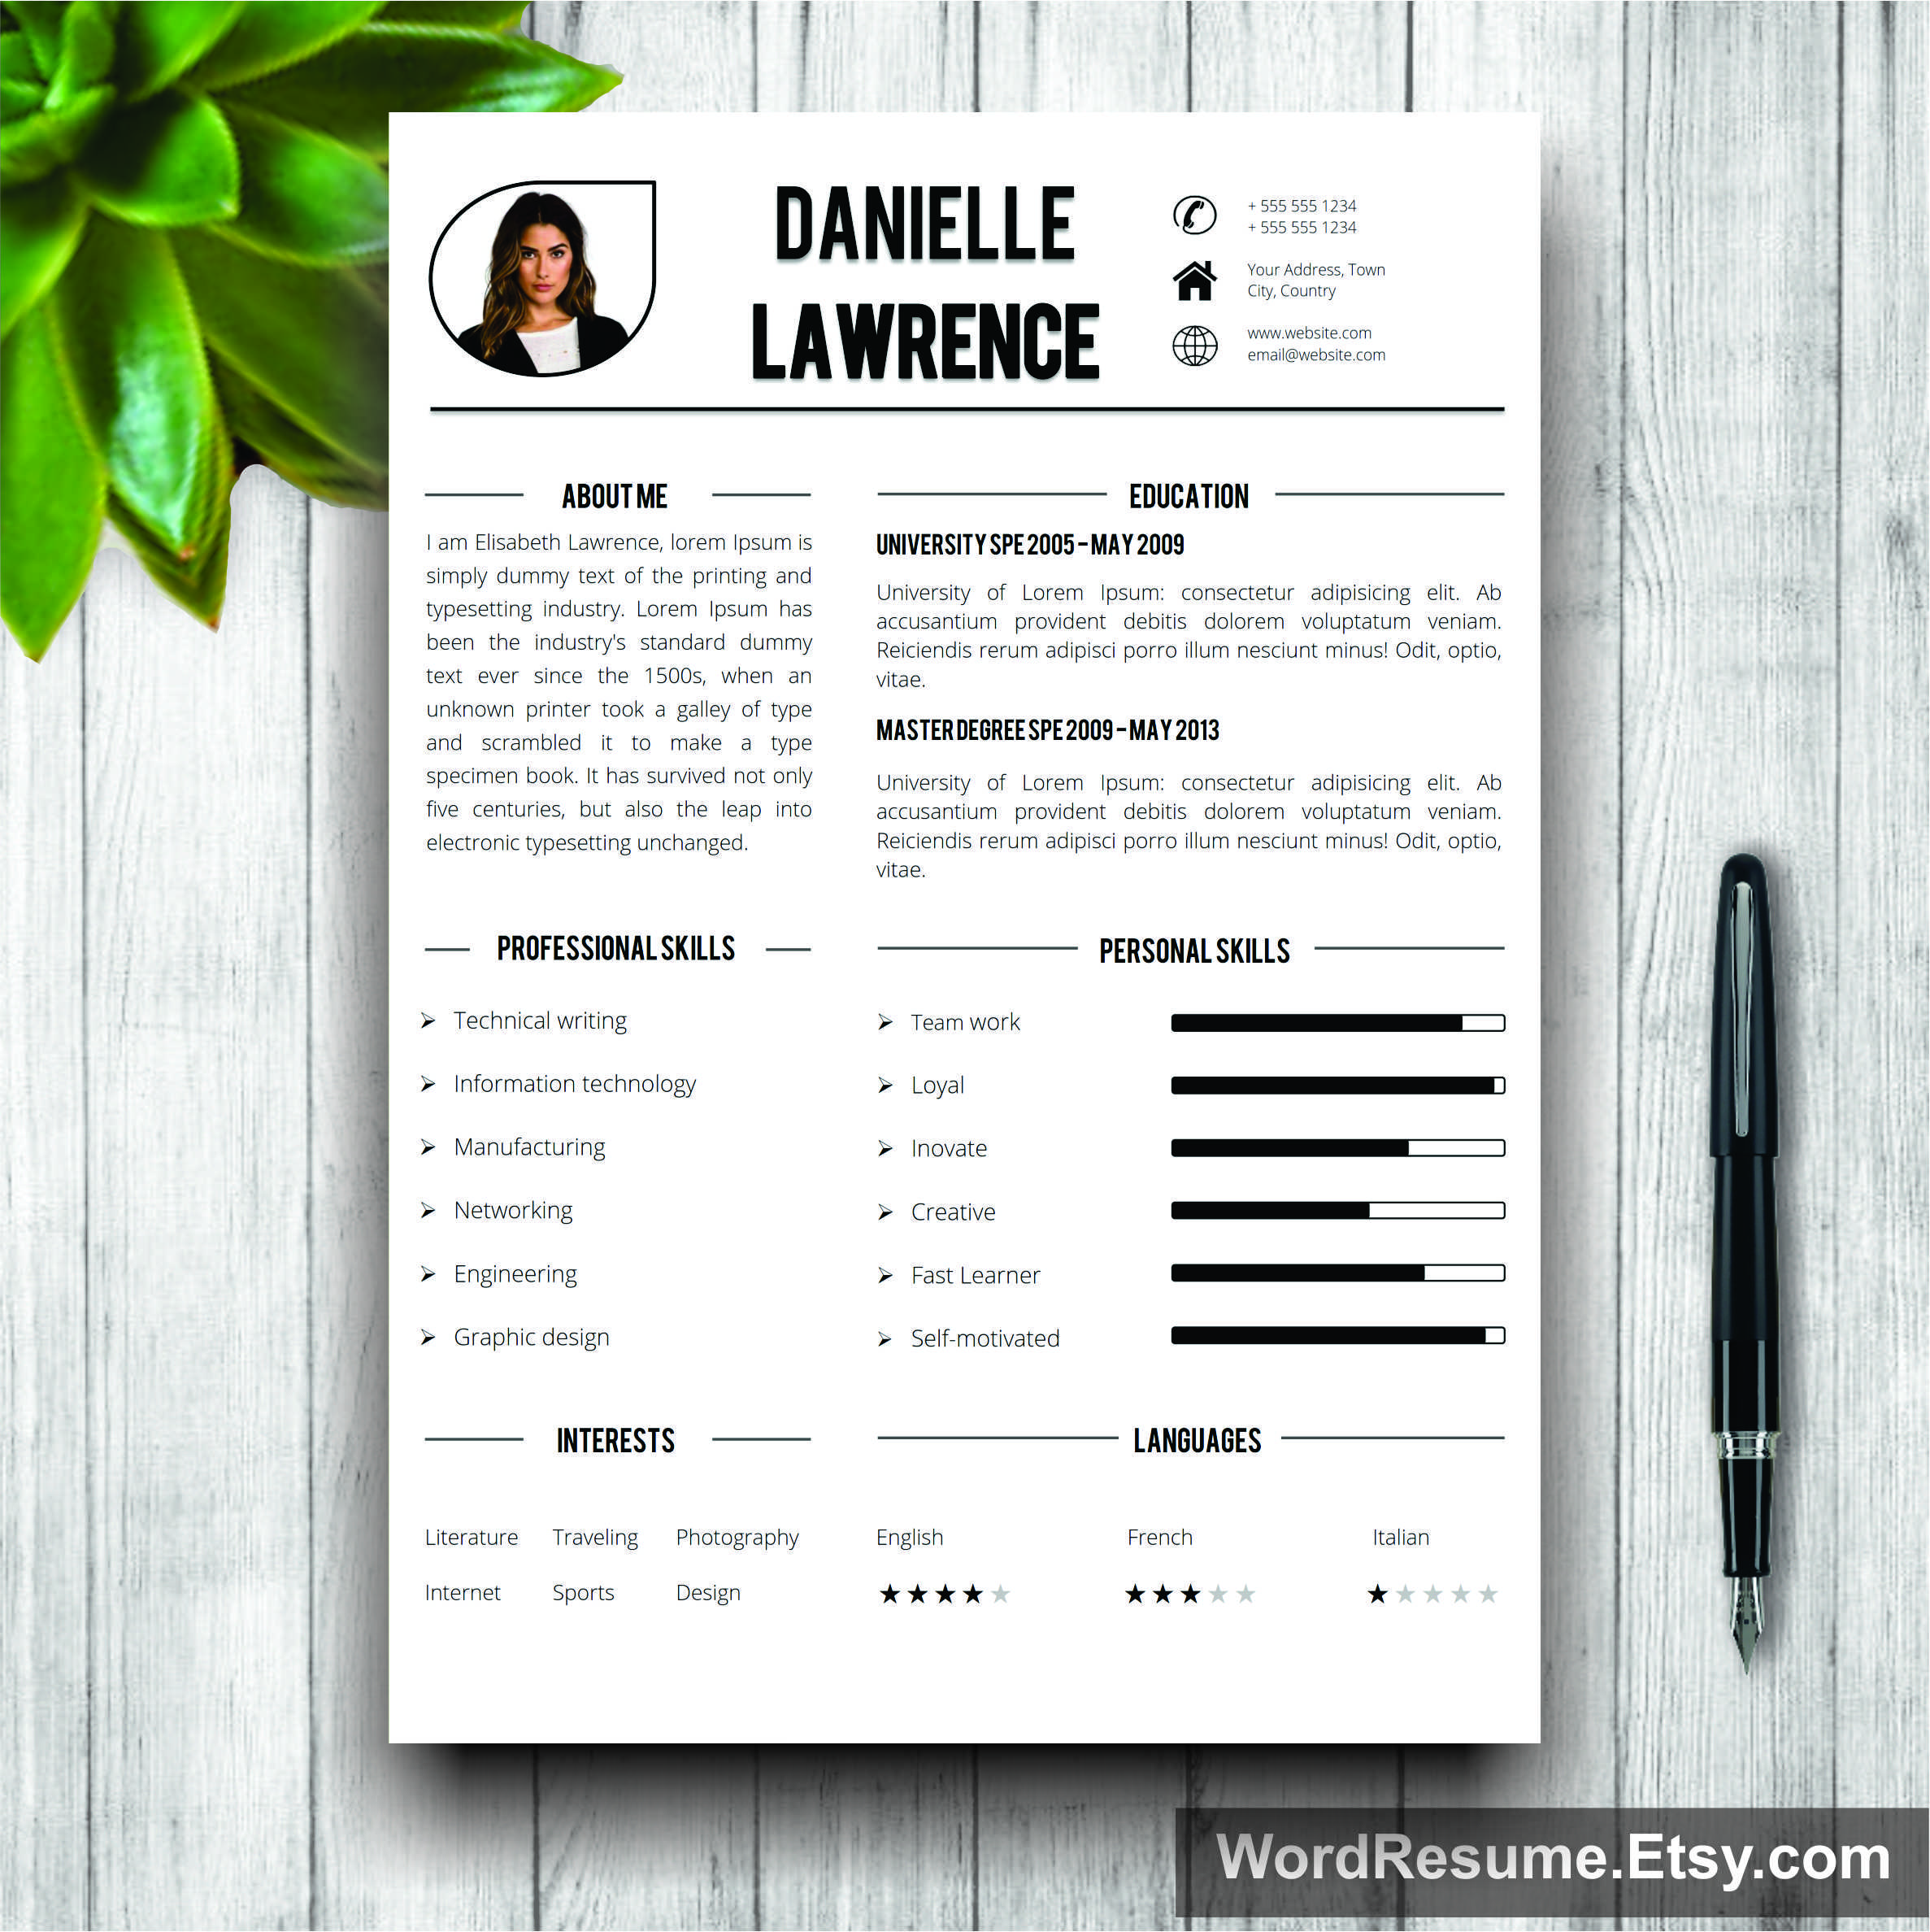 resume template mockup 13 - Resume Template With Cover Letter